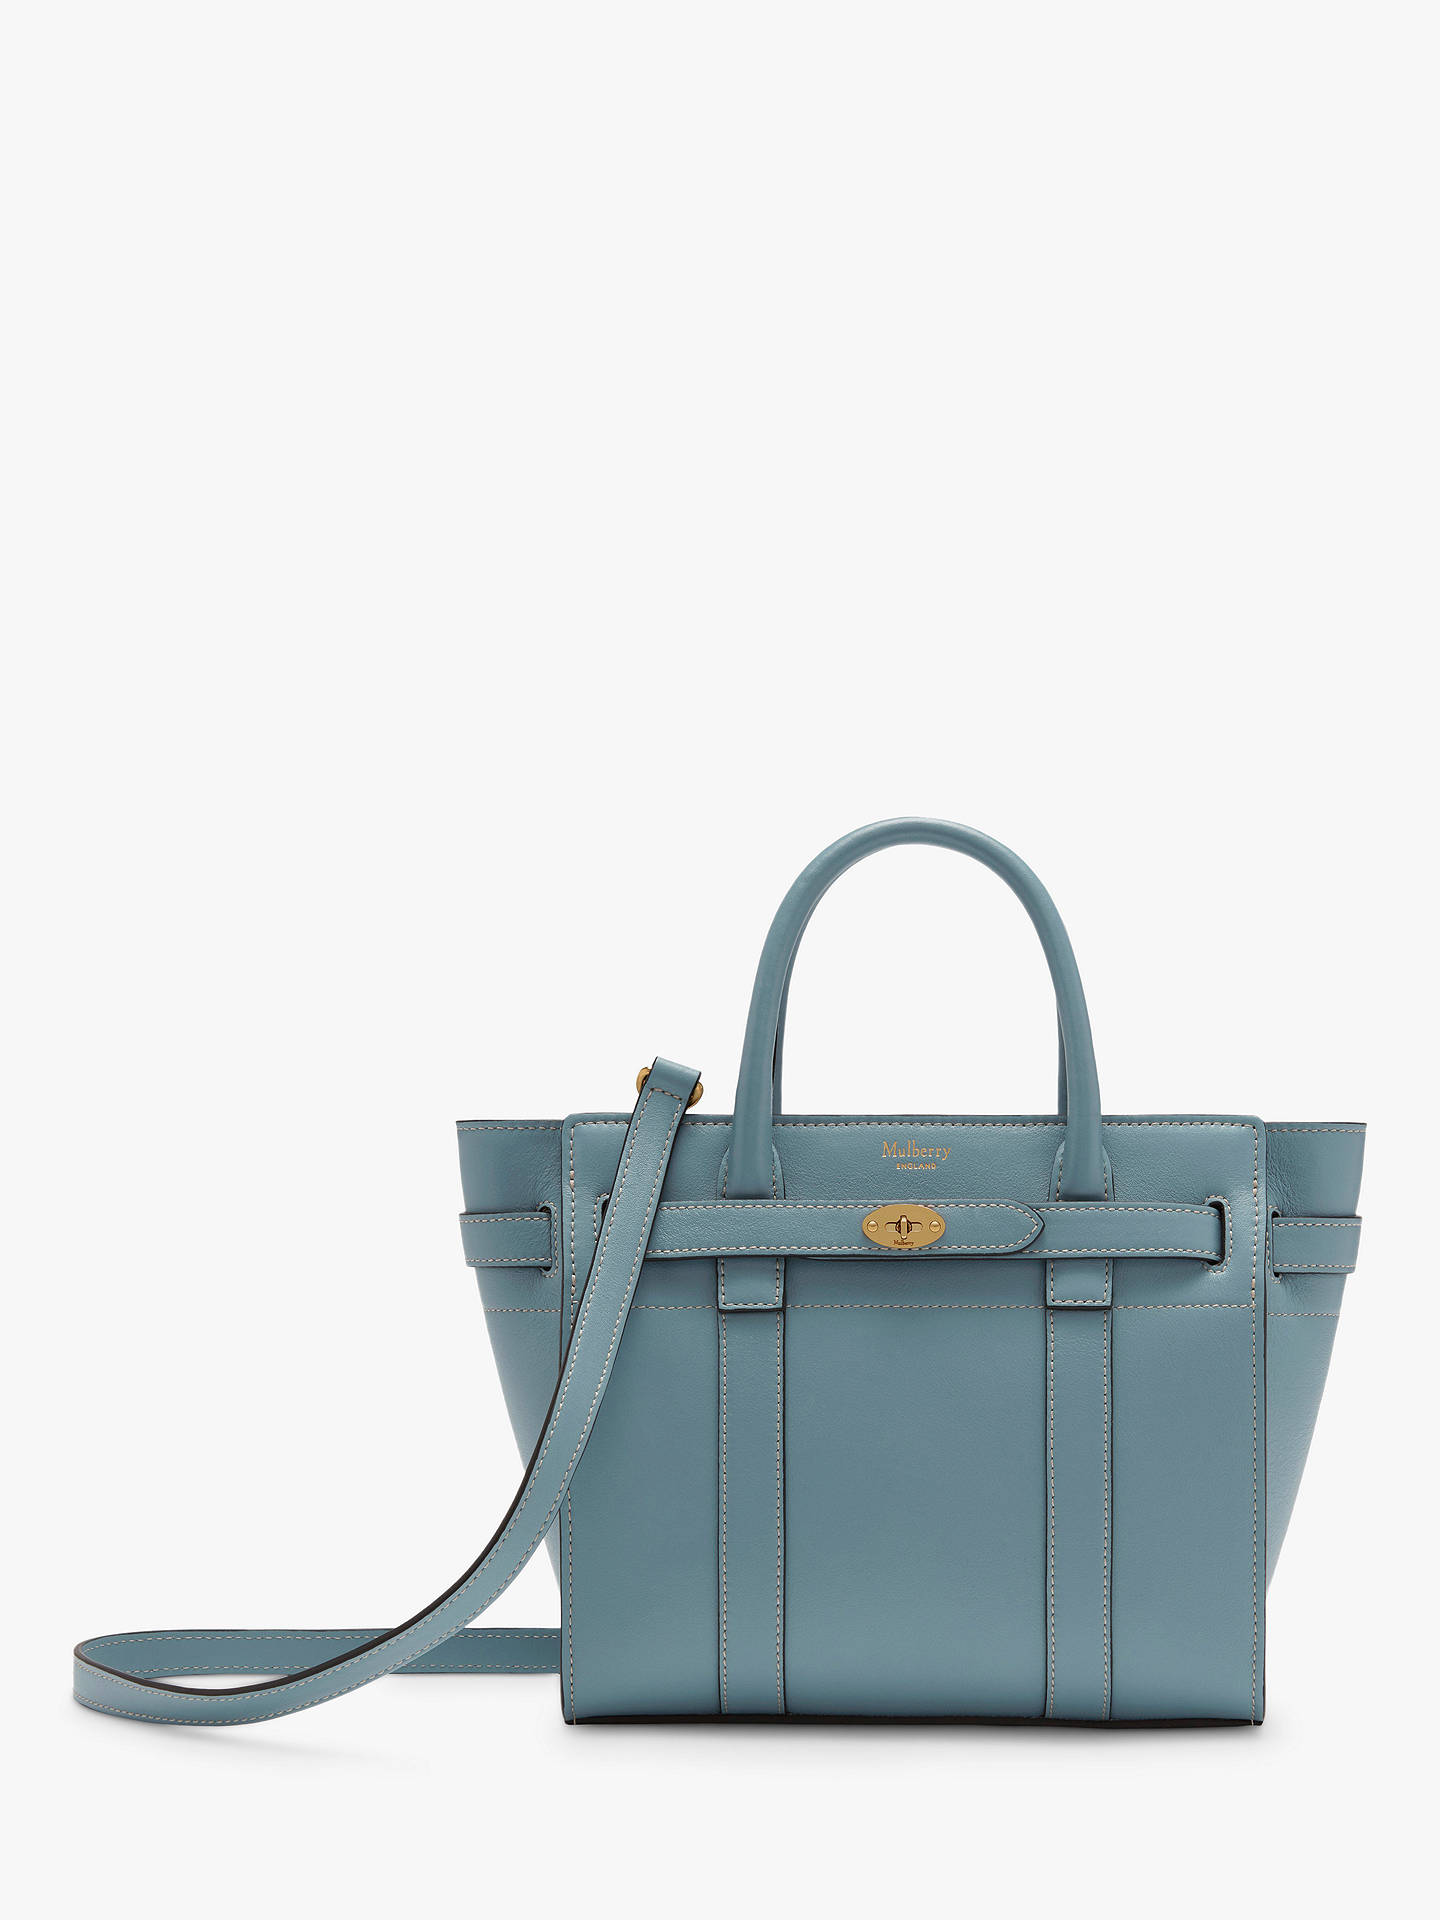 8251cab3f8 Mulberry Mini Bayswater Zipped Silk Calf's Leather Tote Bag, Nordic Blue